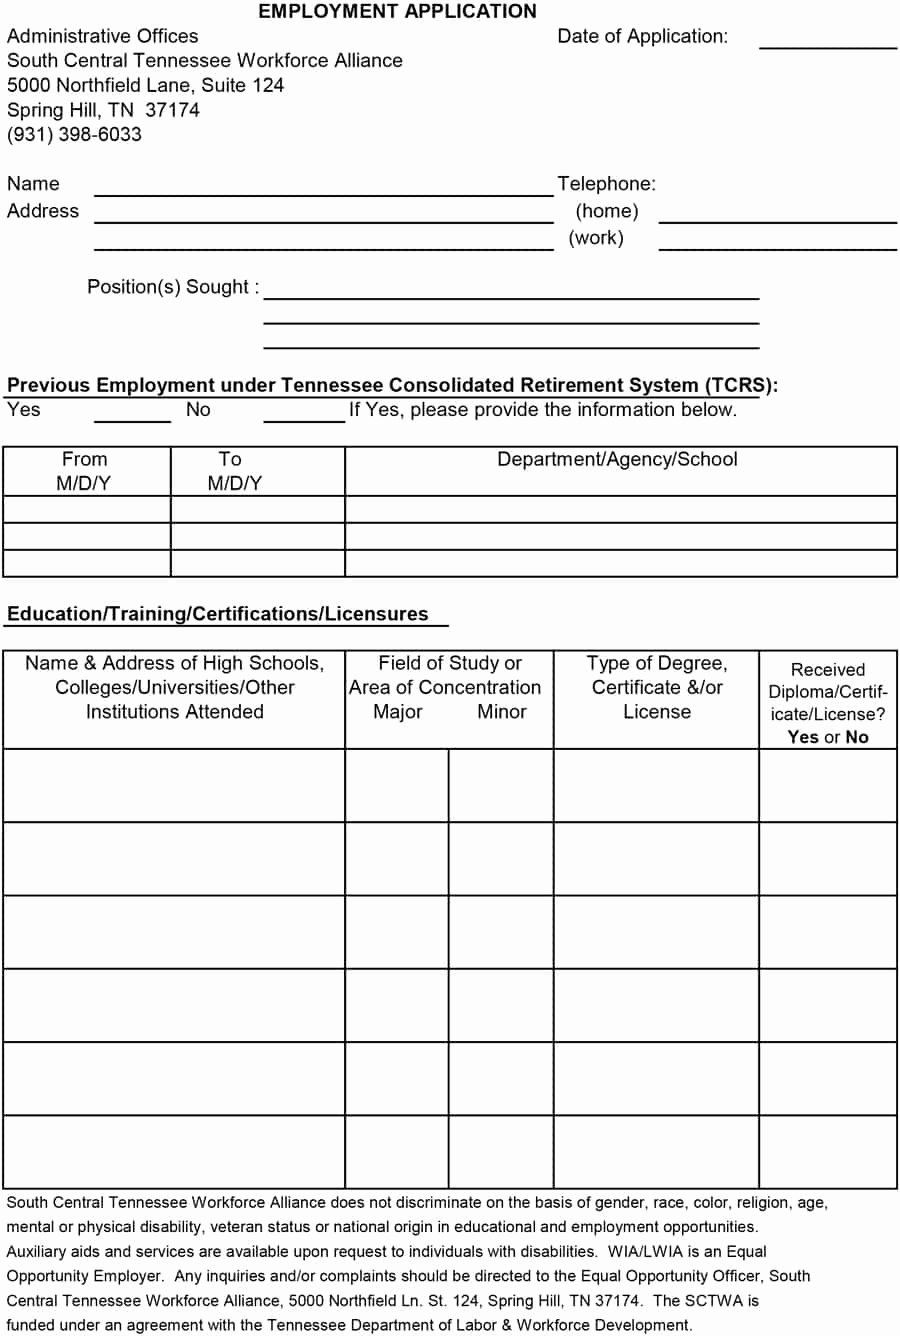 Free Employment Application Template Word New 50 Free Employment Job Application Form Templates Job Application Form Employment Application Application Form Free employment application template word